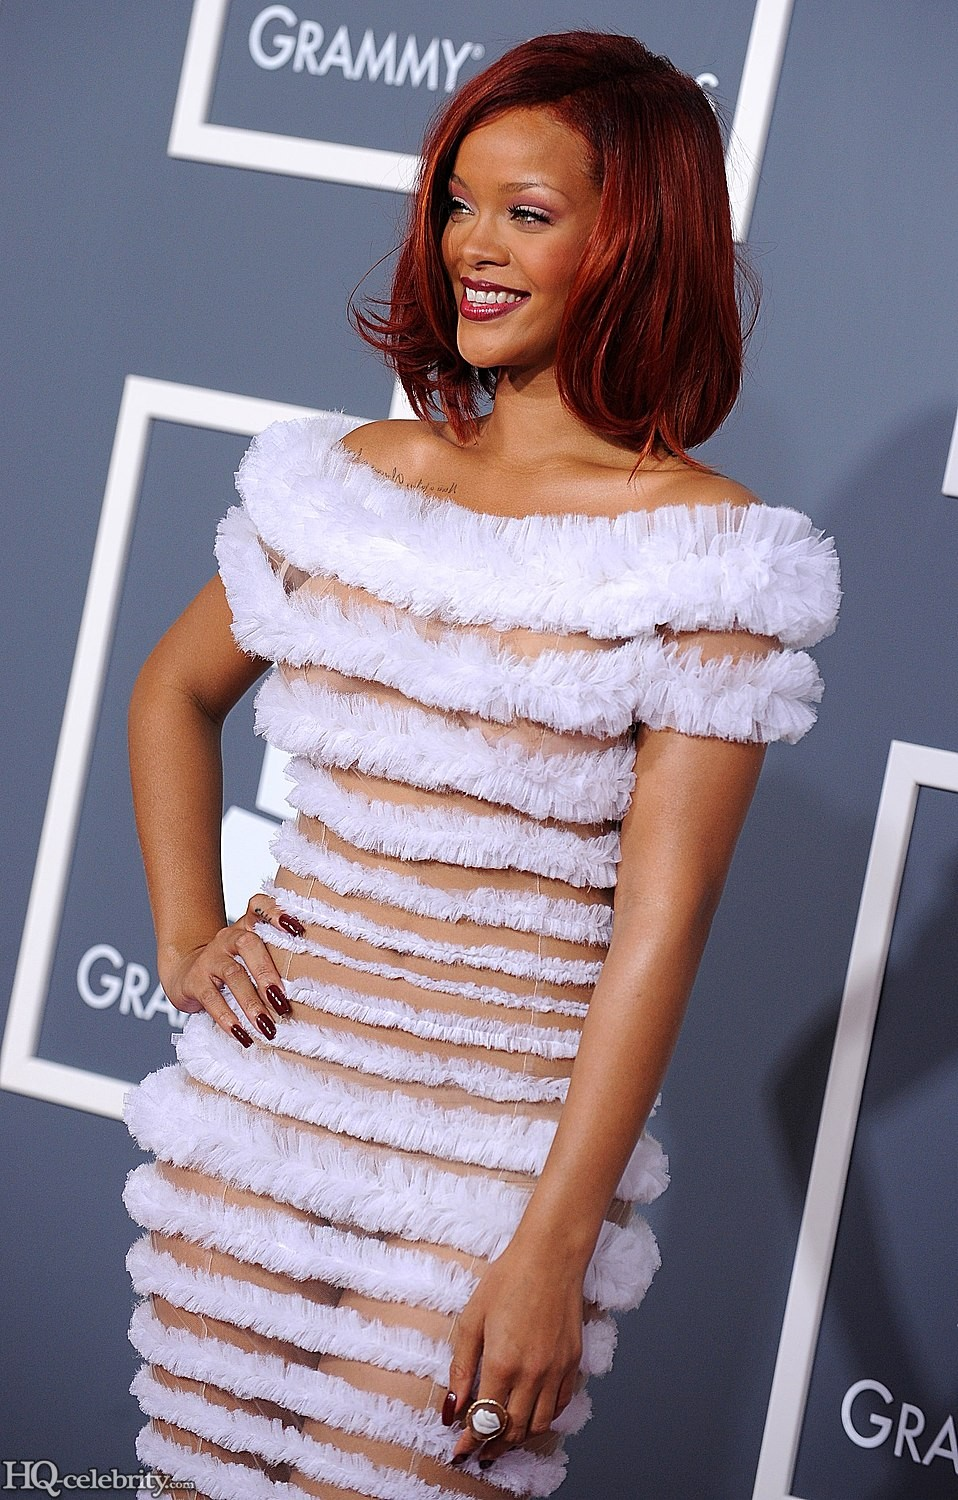 Ontel Hordok: Rihanna In Too Beautiful Combination White and Skin Dress 10 Photos,